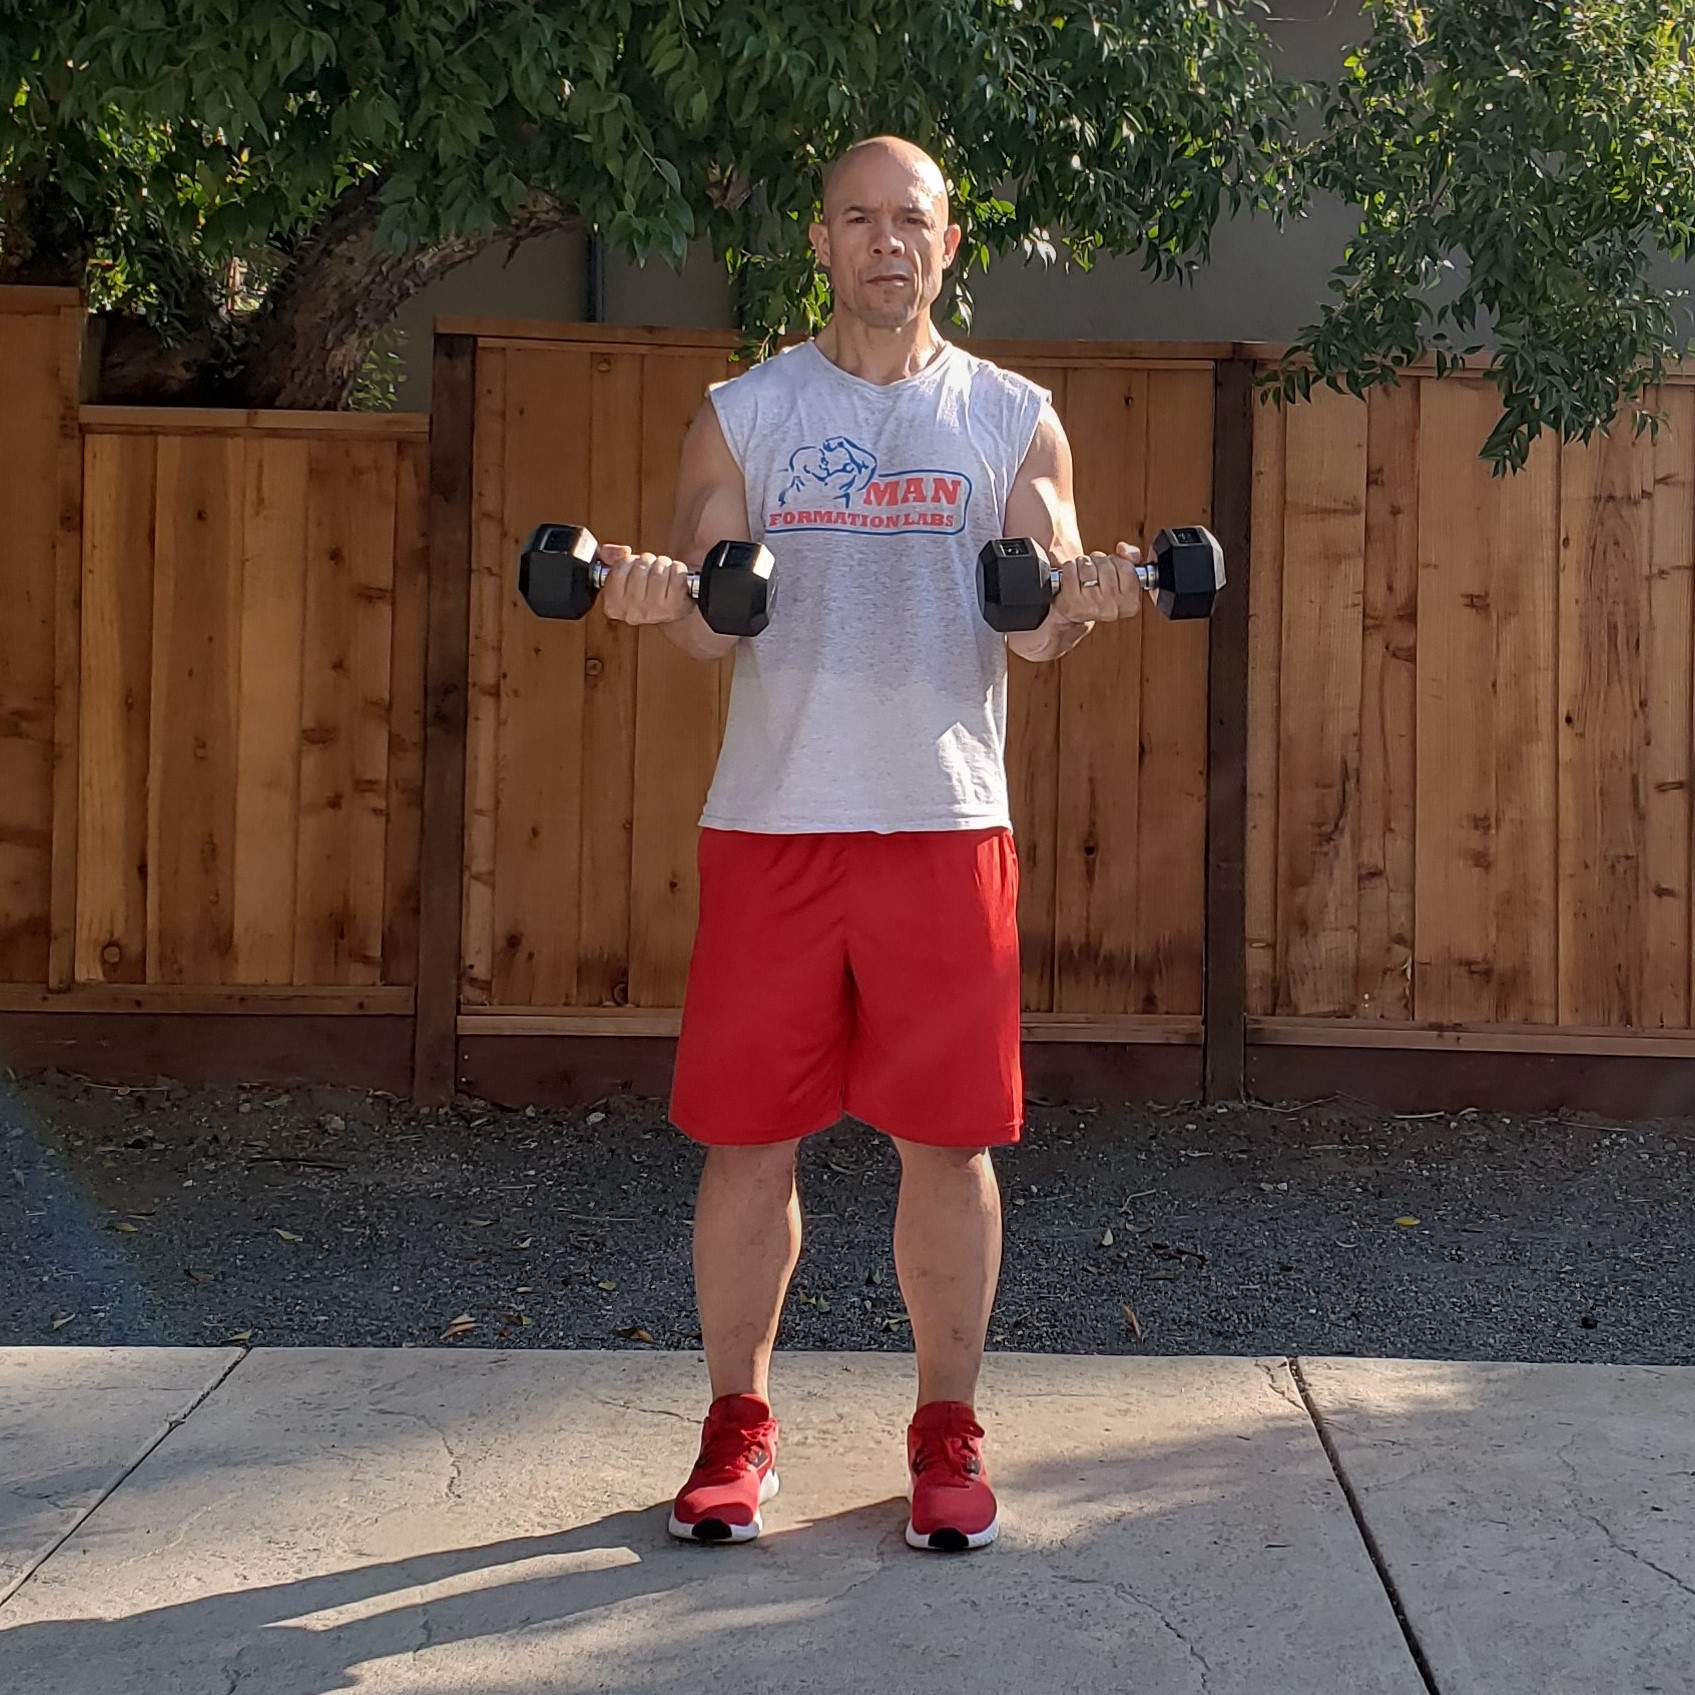 4 curls 15 x 15 x 15 Workouts For Older Men HOME Gym Workout #4